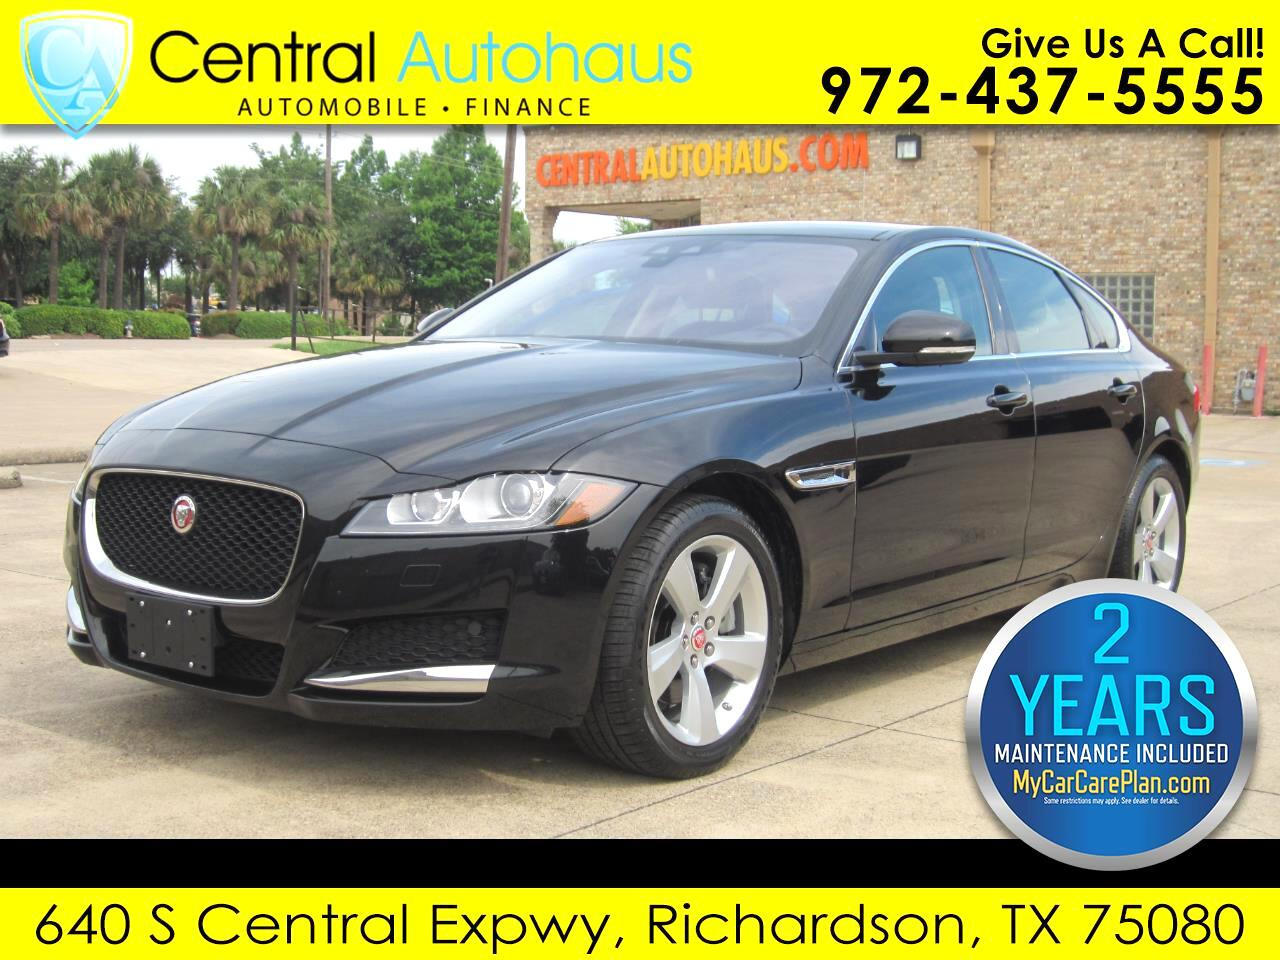 2018 Jaguar XF Sedan 25t RWD